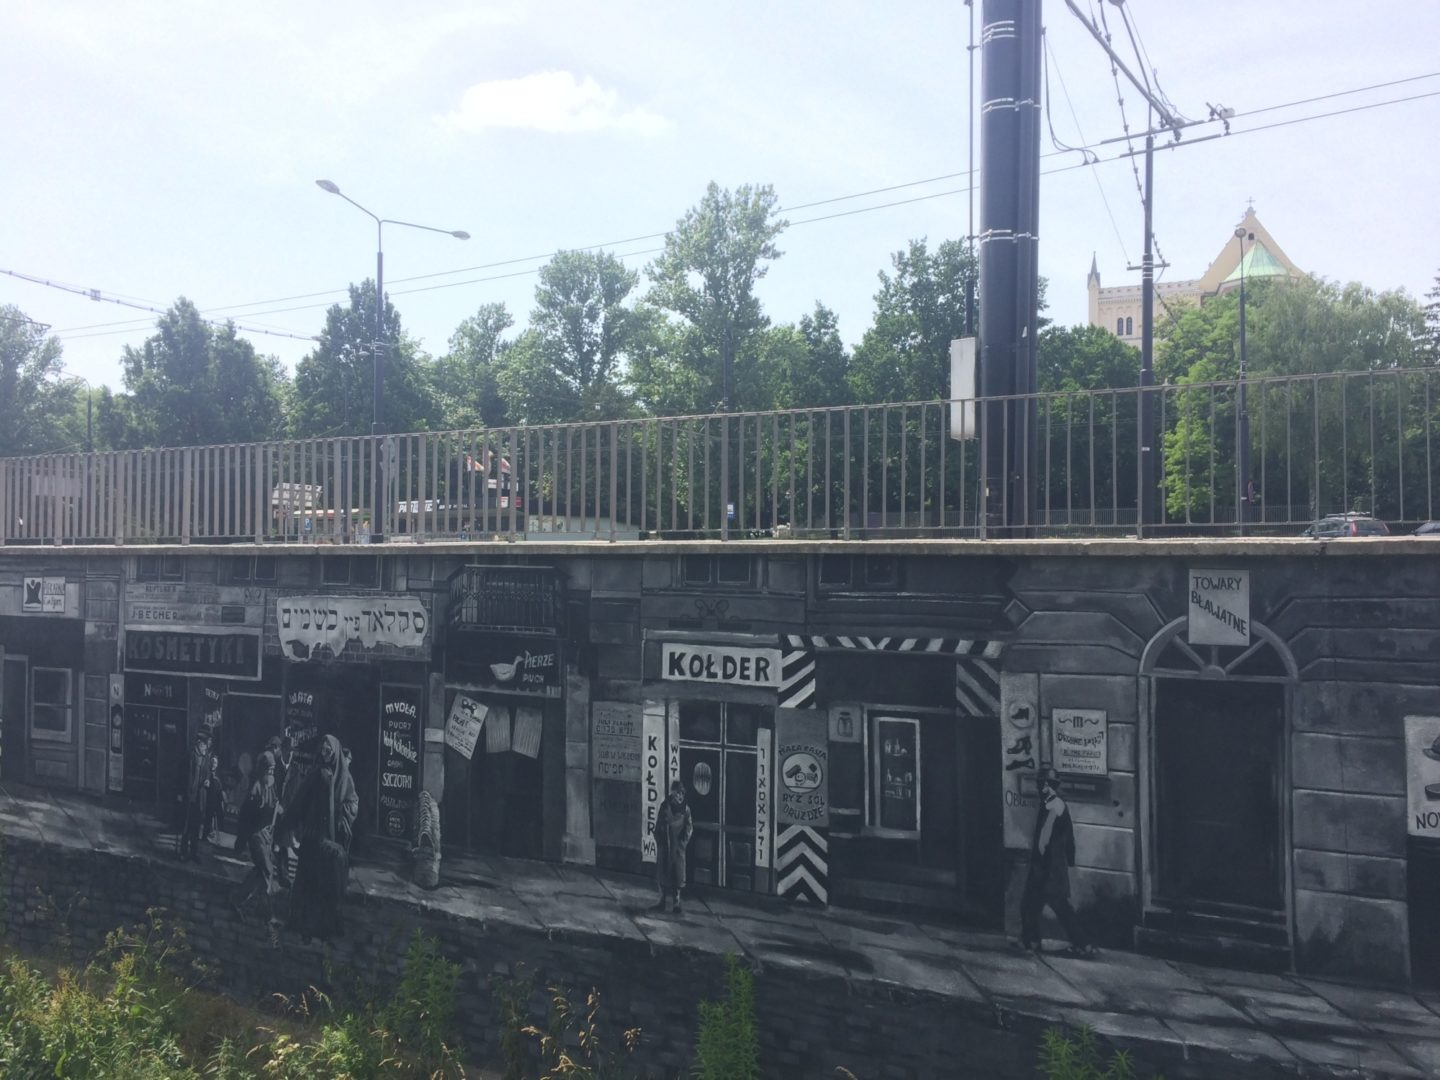 """<p>Mural along the Czechówka river in Lublin, in the formerly Jewish neighborhood of Podzamcze. For more information, see <a href=""""https://teatrnn.pl/pamiec/en/the-mural-alongside-the-czechowka-river/"""">the Theater <span class=""""caps"""">NN</span>'s website</a>. Photo by the&nbsp;author.</p>"""